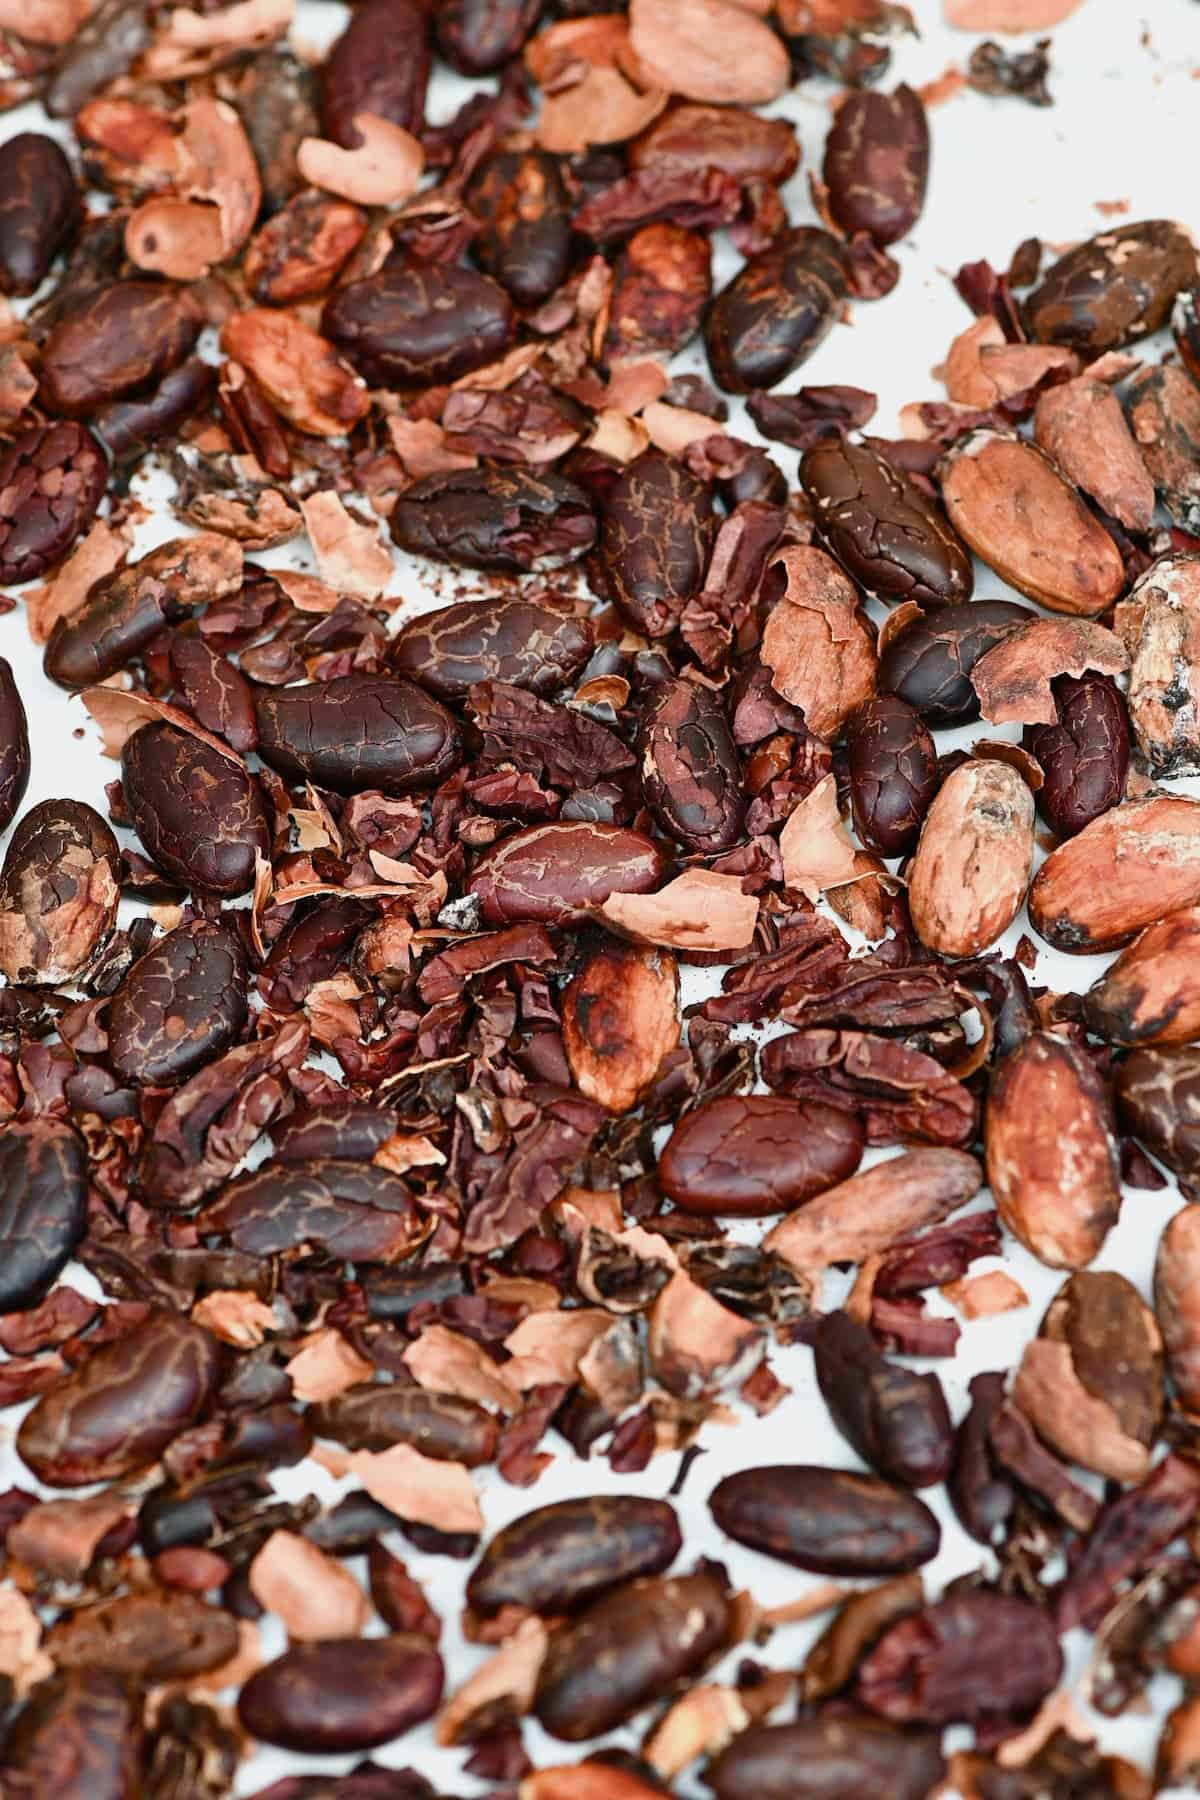 Fermented cacao beans